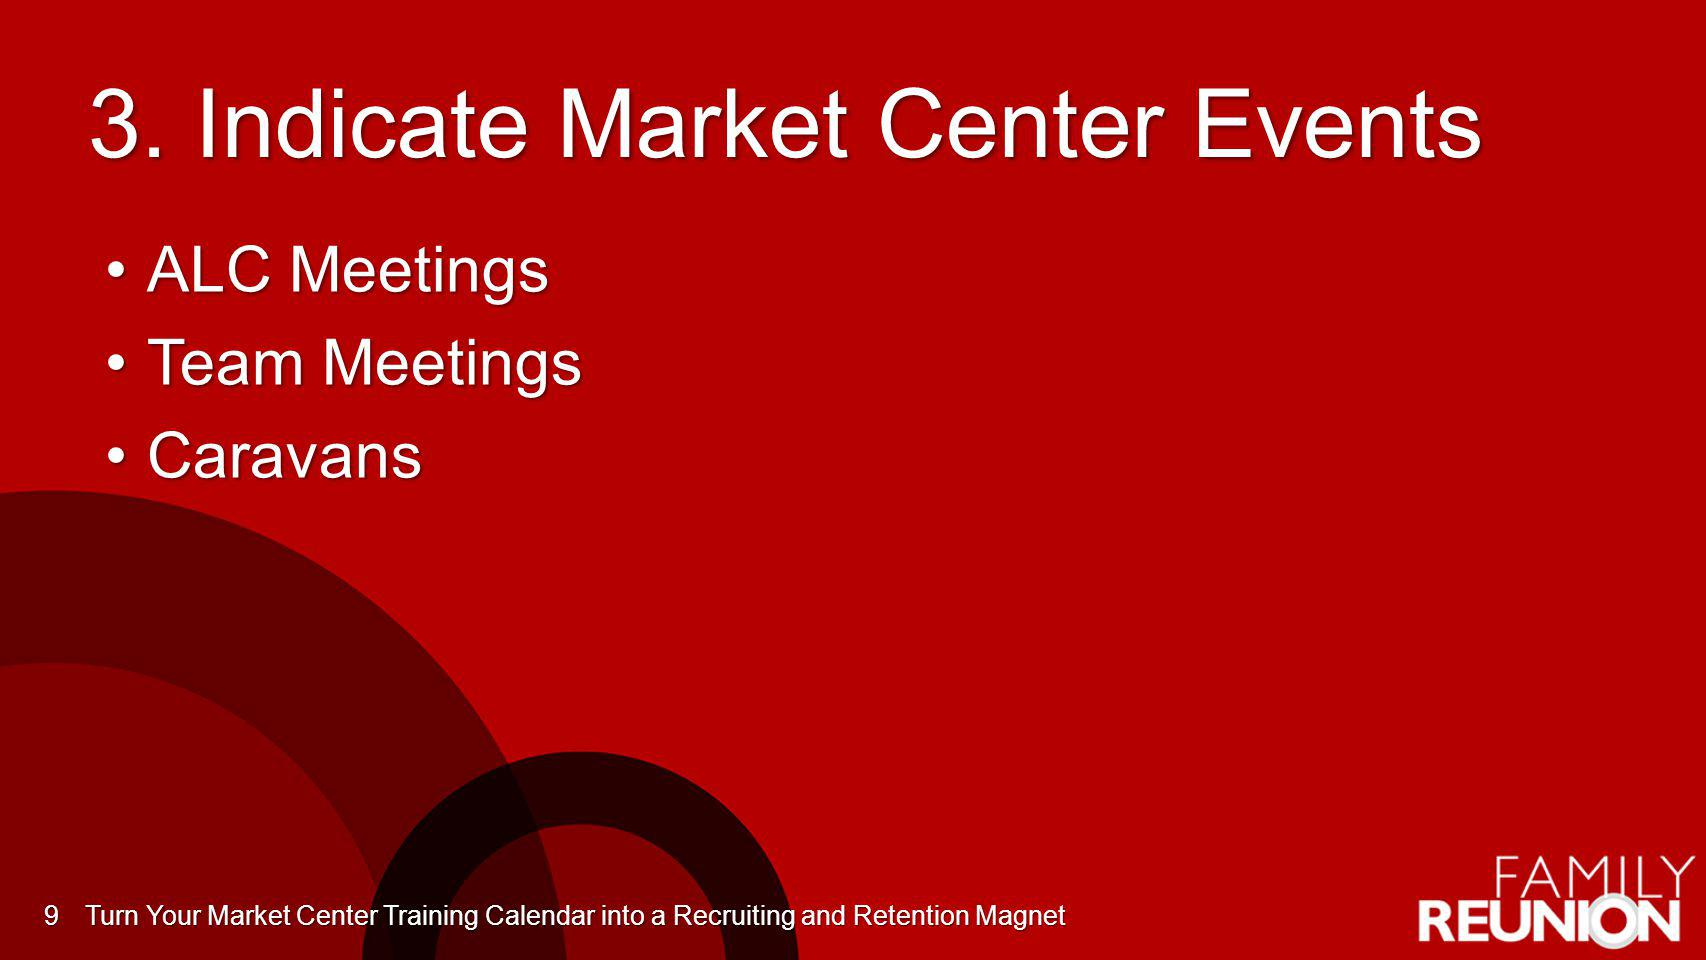 Contact Information james.shaw@kw.comjames.shaw@kw.com www.youtube.com/jdshaw971www.youtube.com/jdshaw971 www.facebook.com/jamesshawwww.facebook.com/jamesshaw Turn Your Market Center Training Calendar into a Recruiting and Retention Magnet20